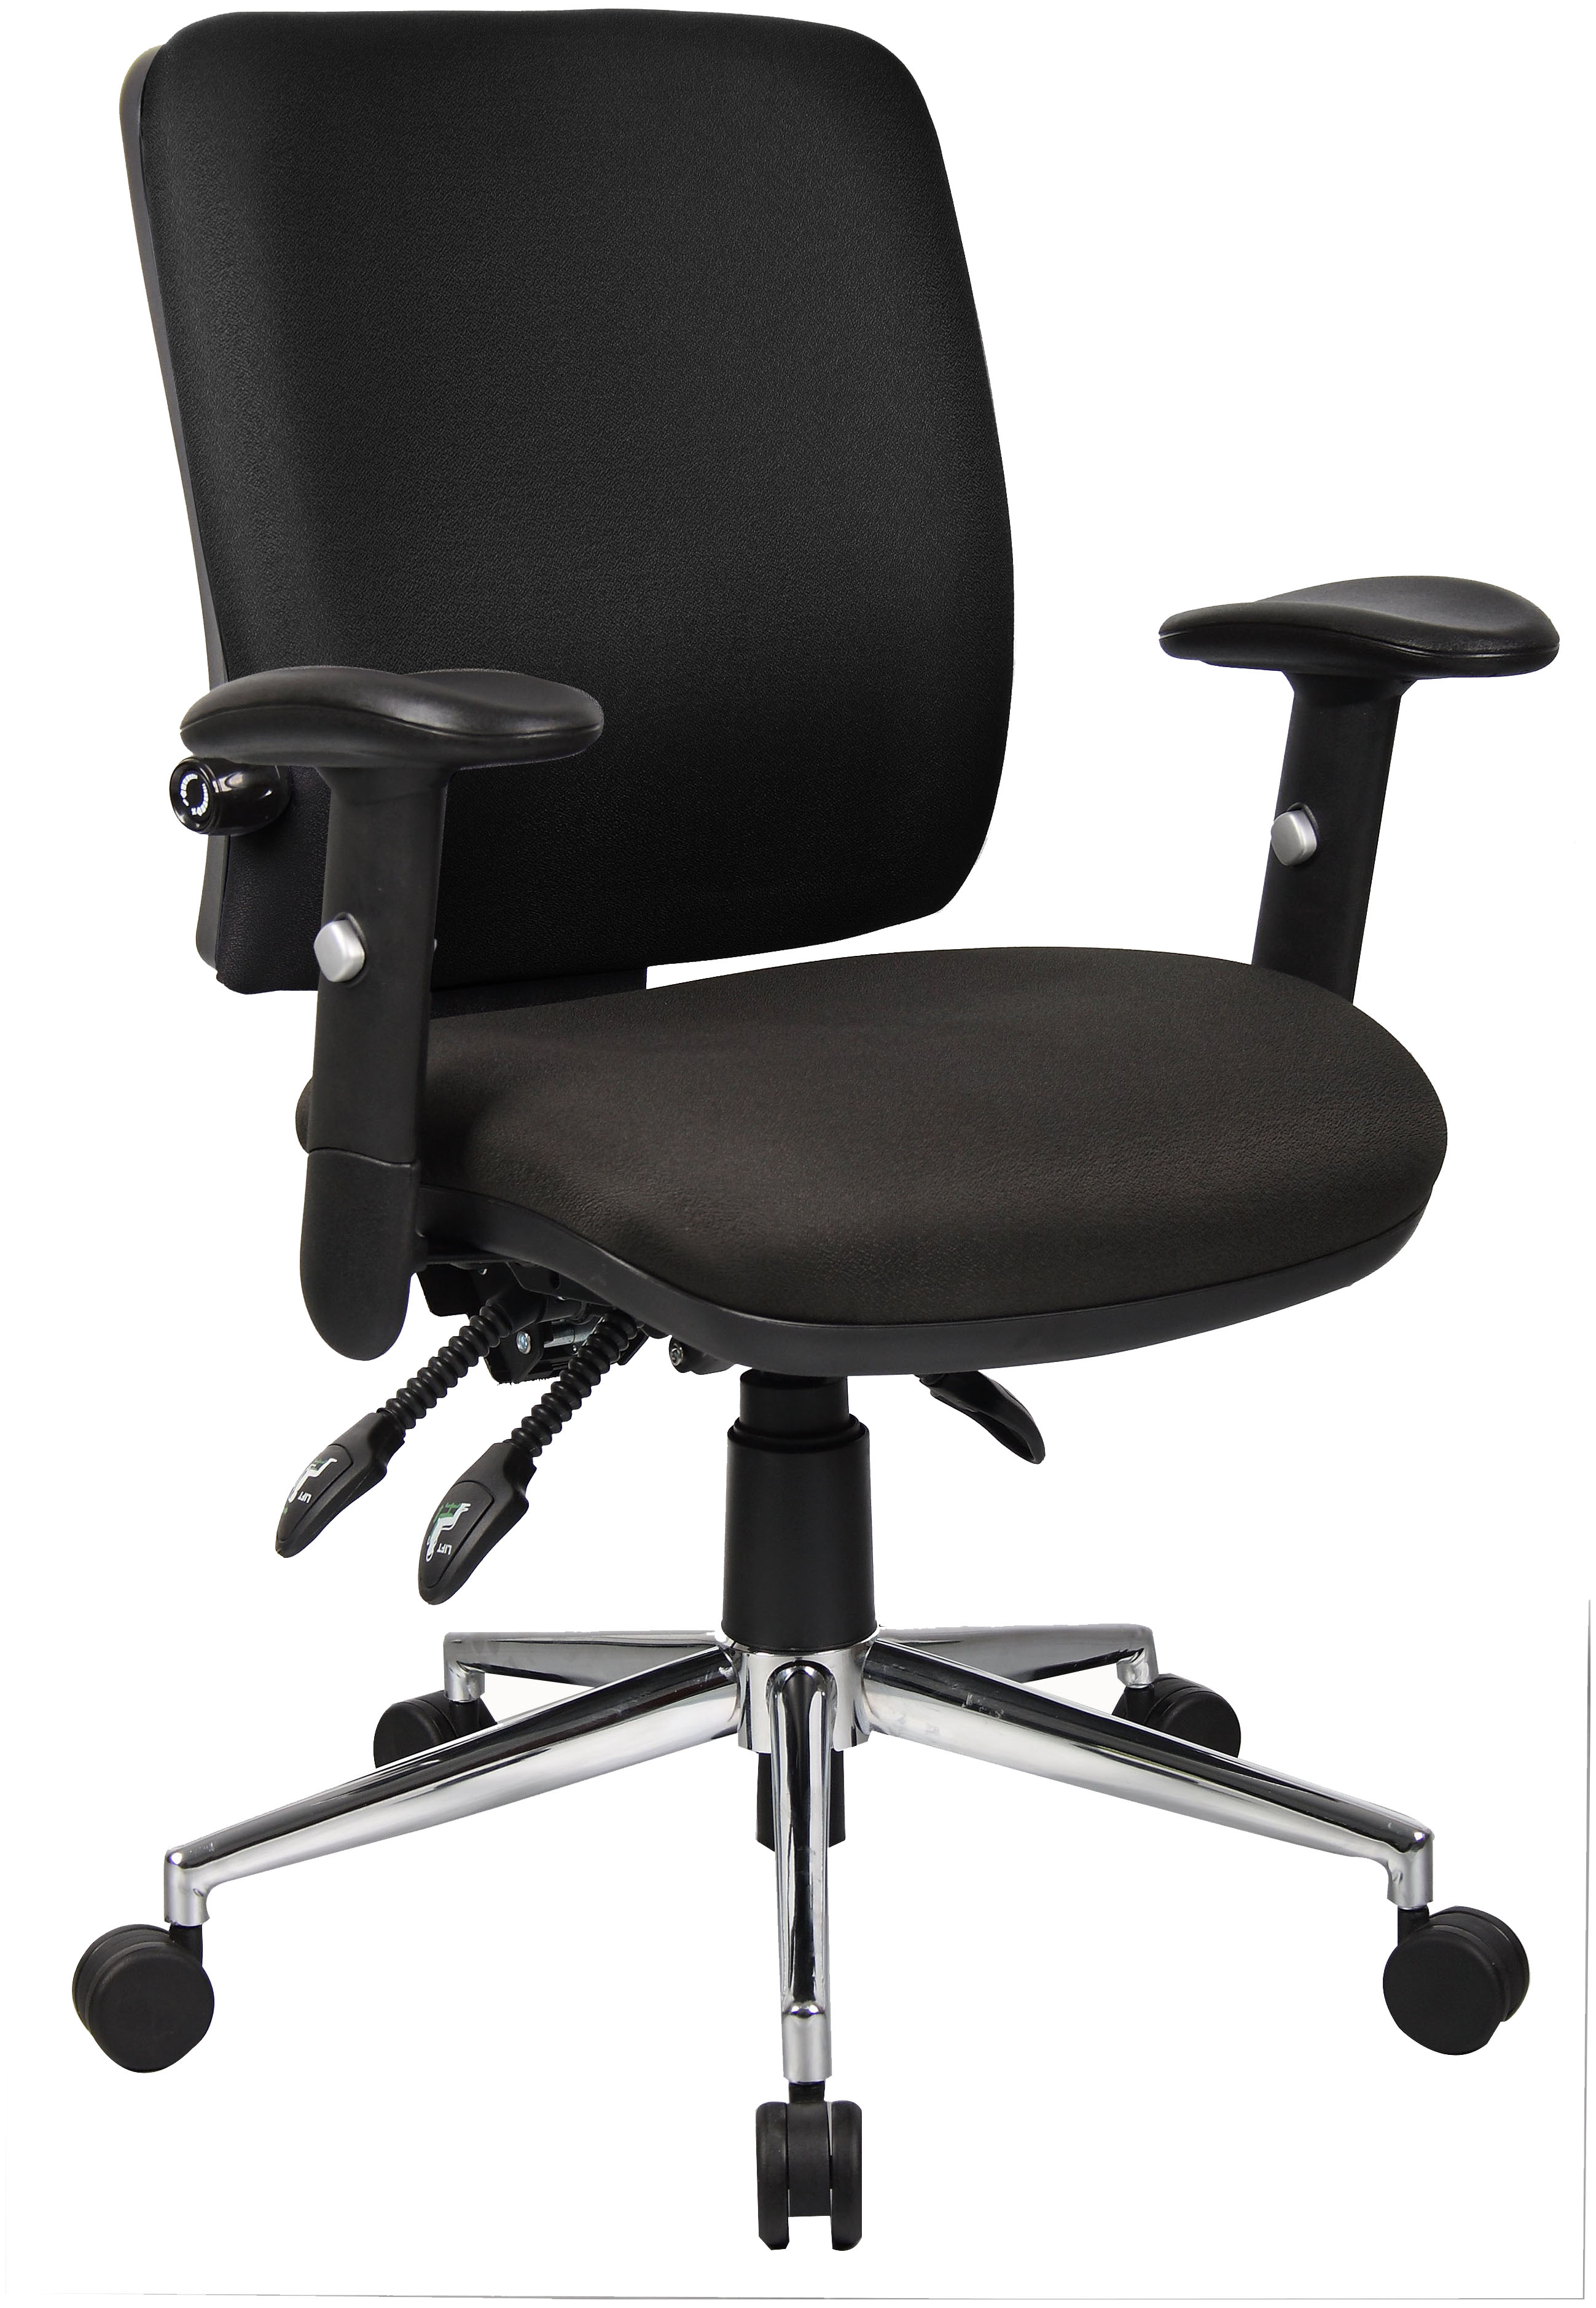 Office Chair Posture Chiro Office Chair Ergonomic Medium Back Office Chair